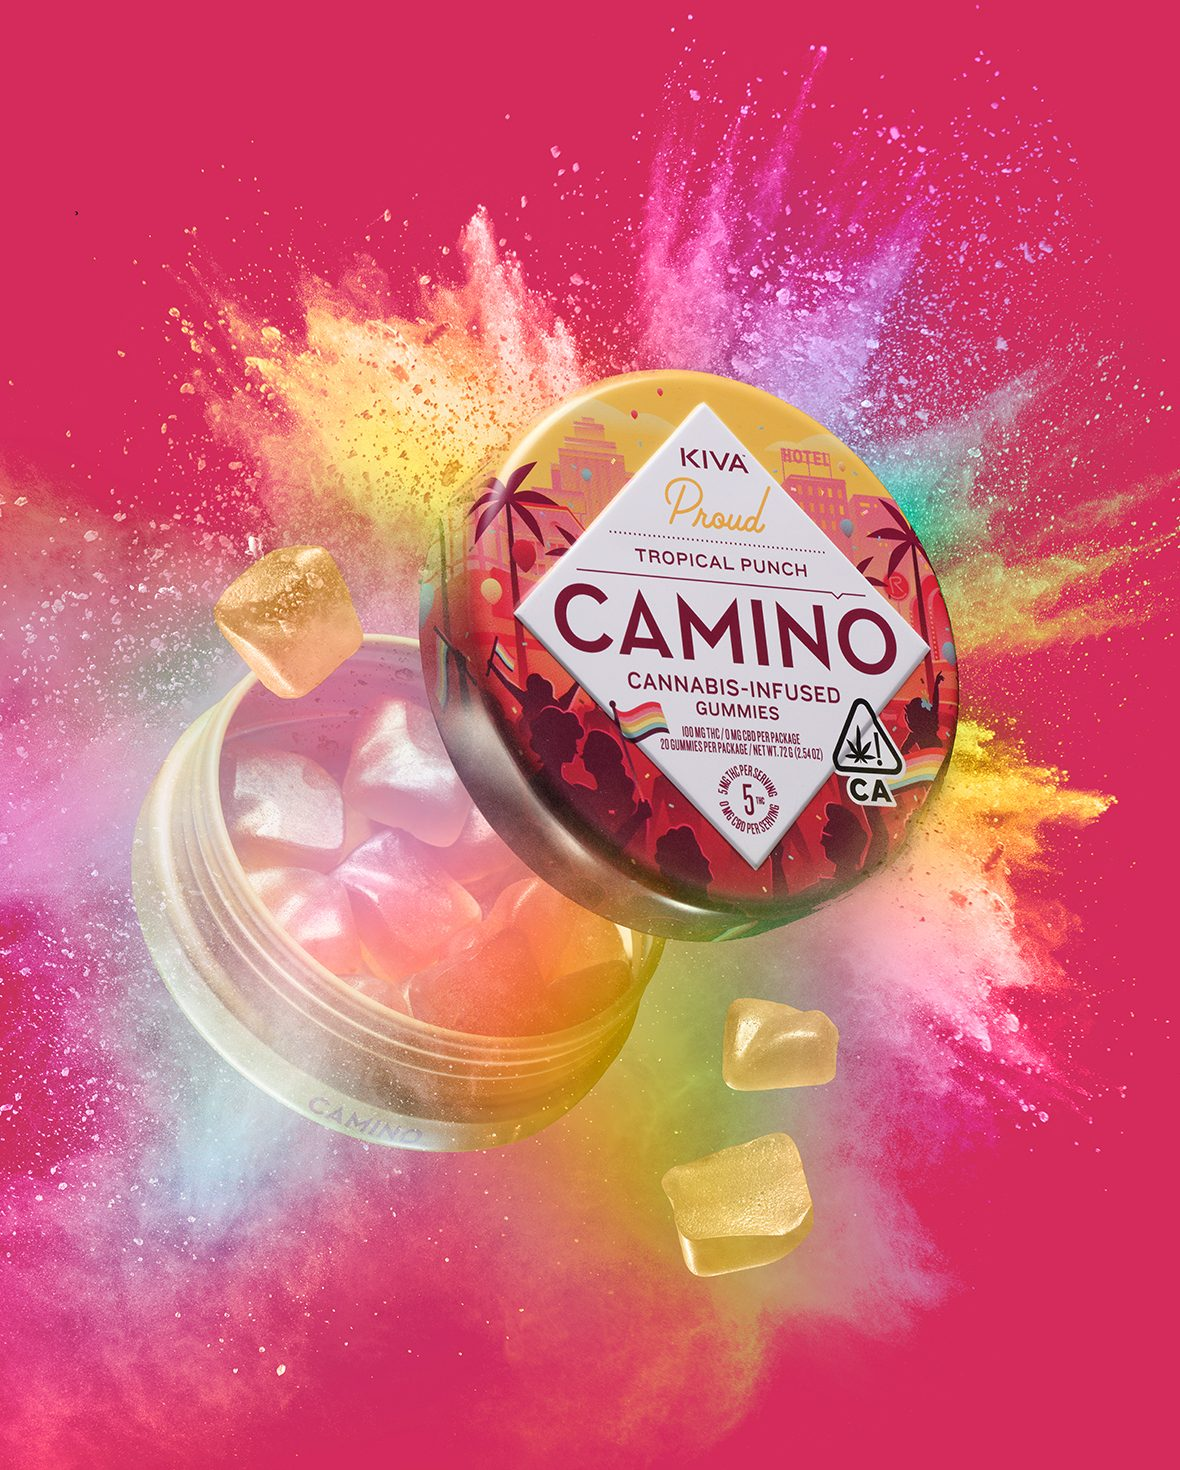 Camino Tropical Punch Website Primary Image